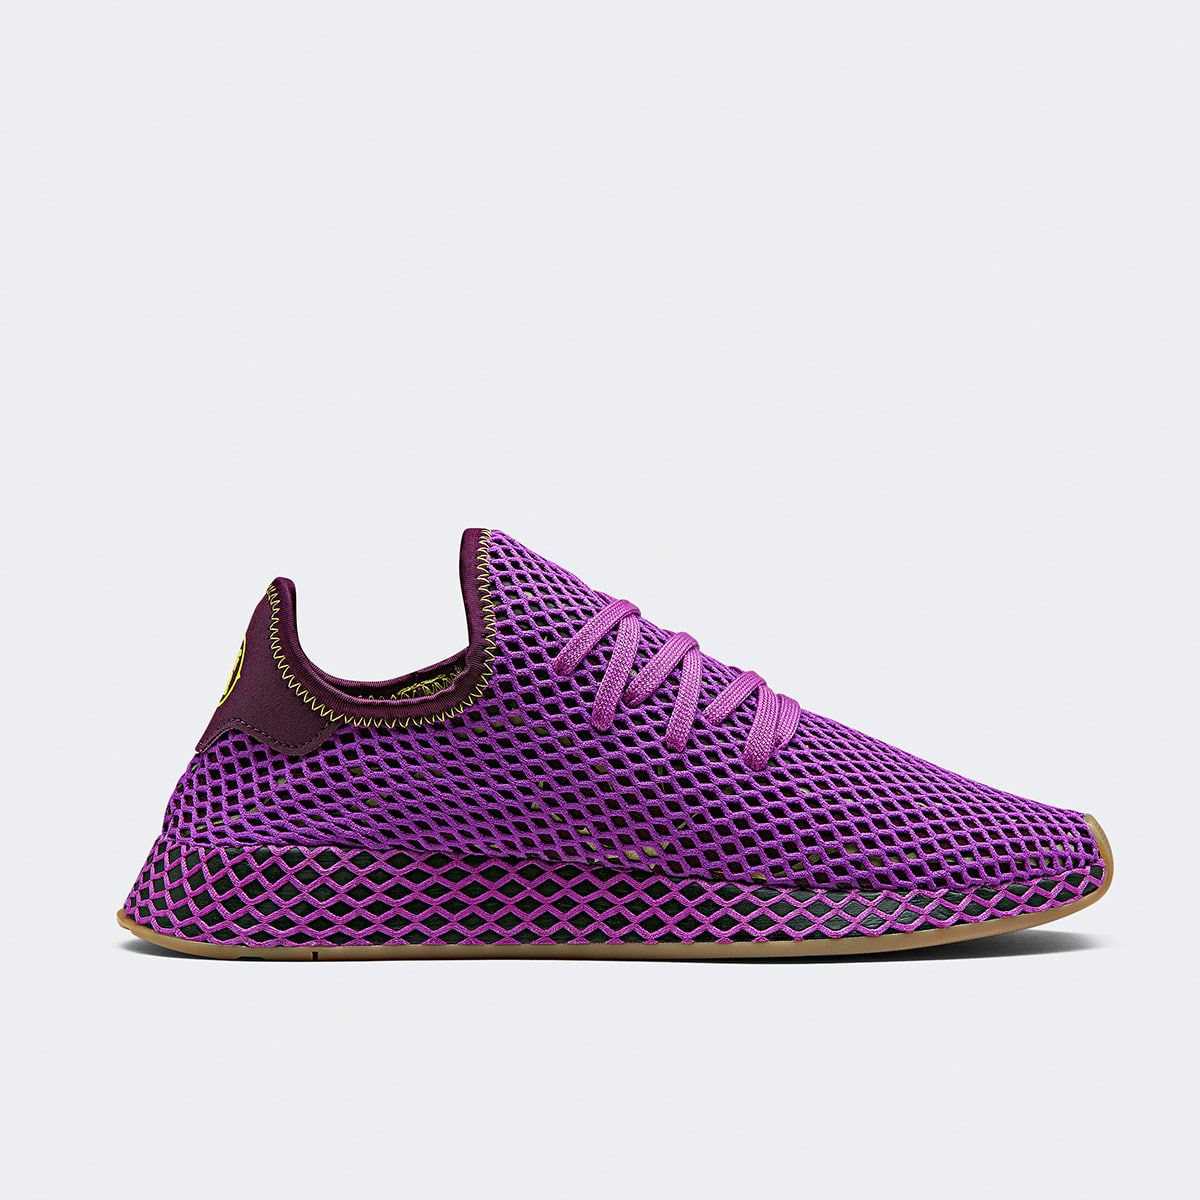 Night Runner X Z Ball Deerupt 'son Adidas Dragon Gohan'purpleRed gfyIYvb76m